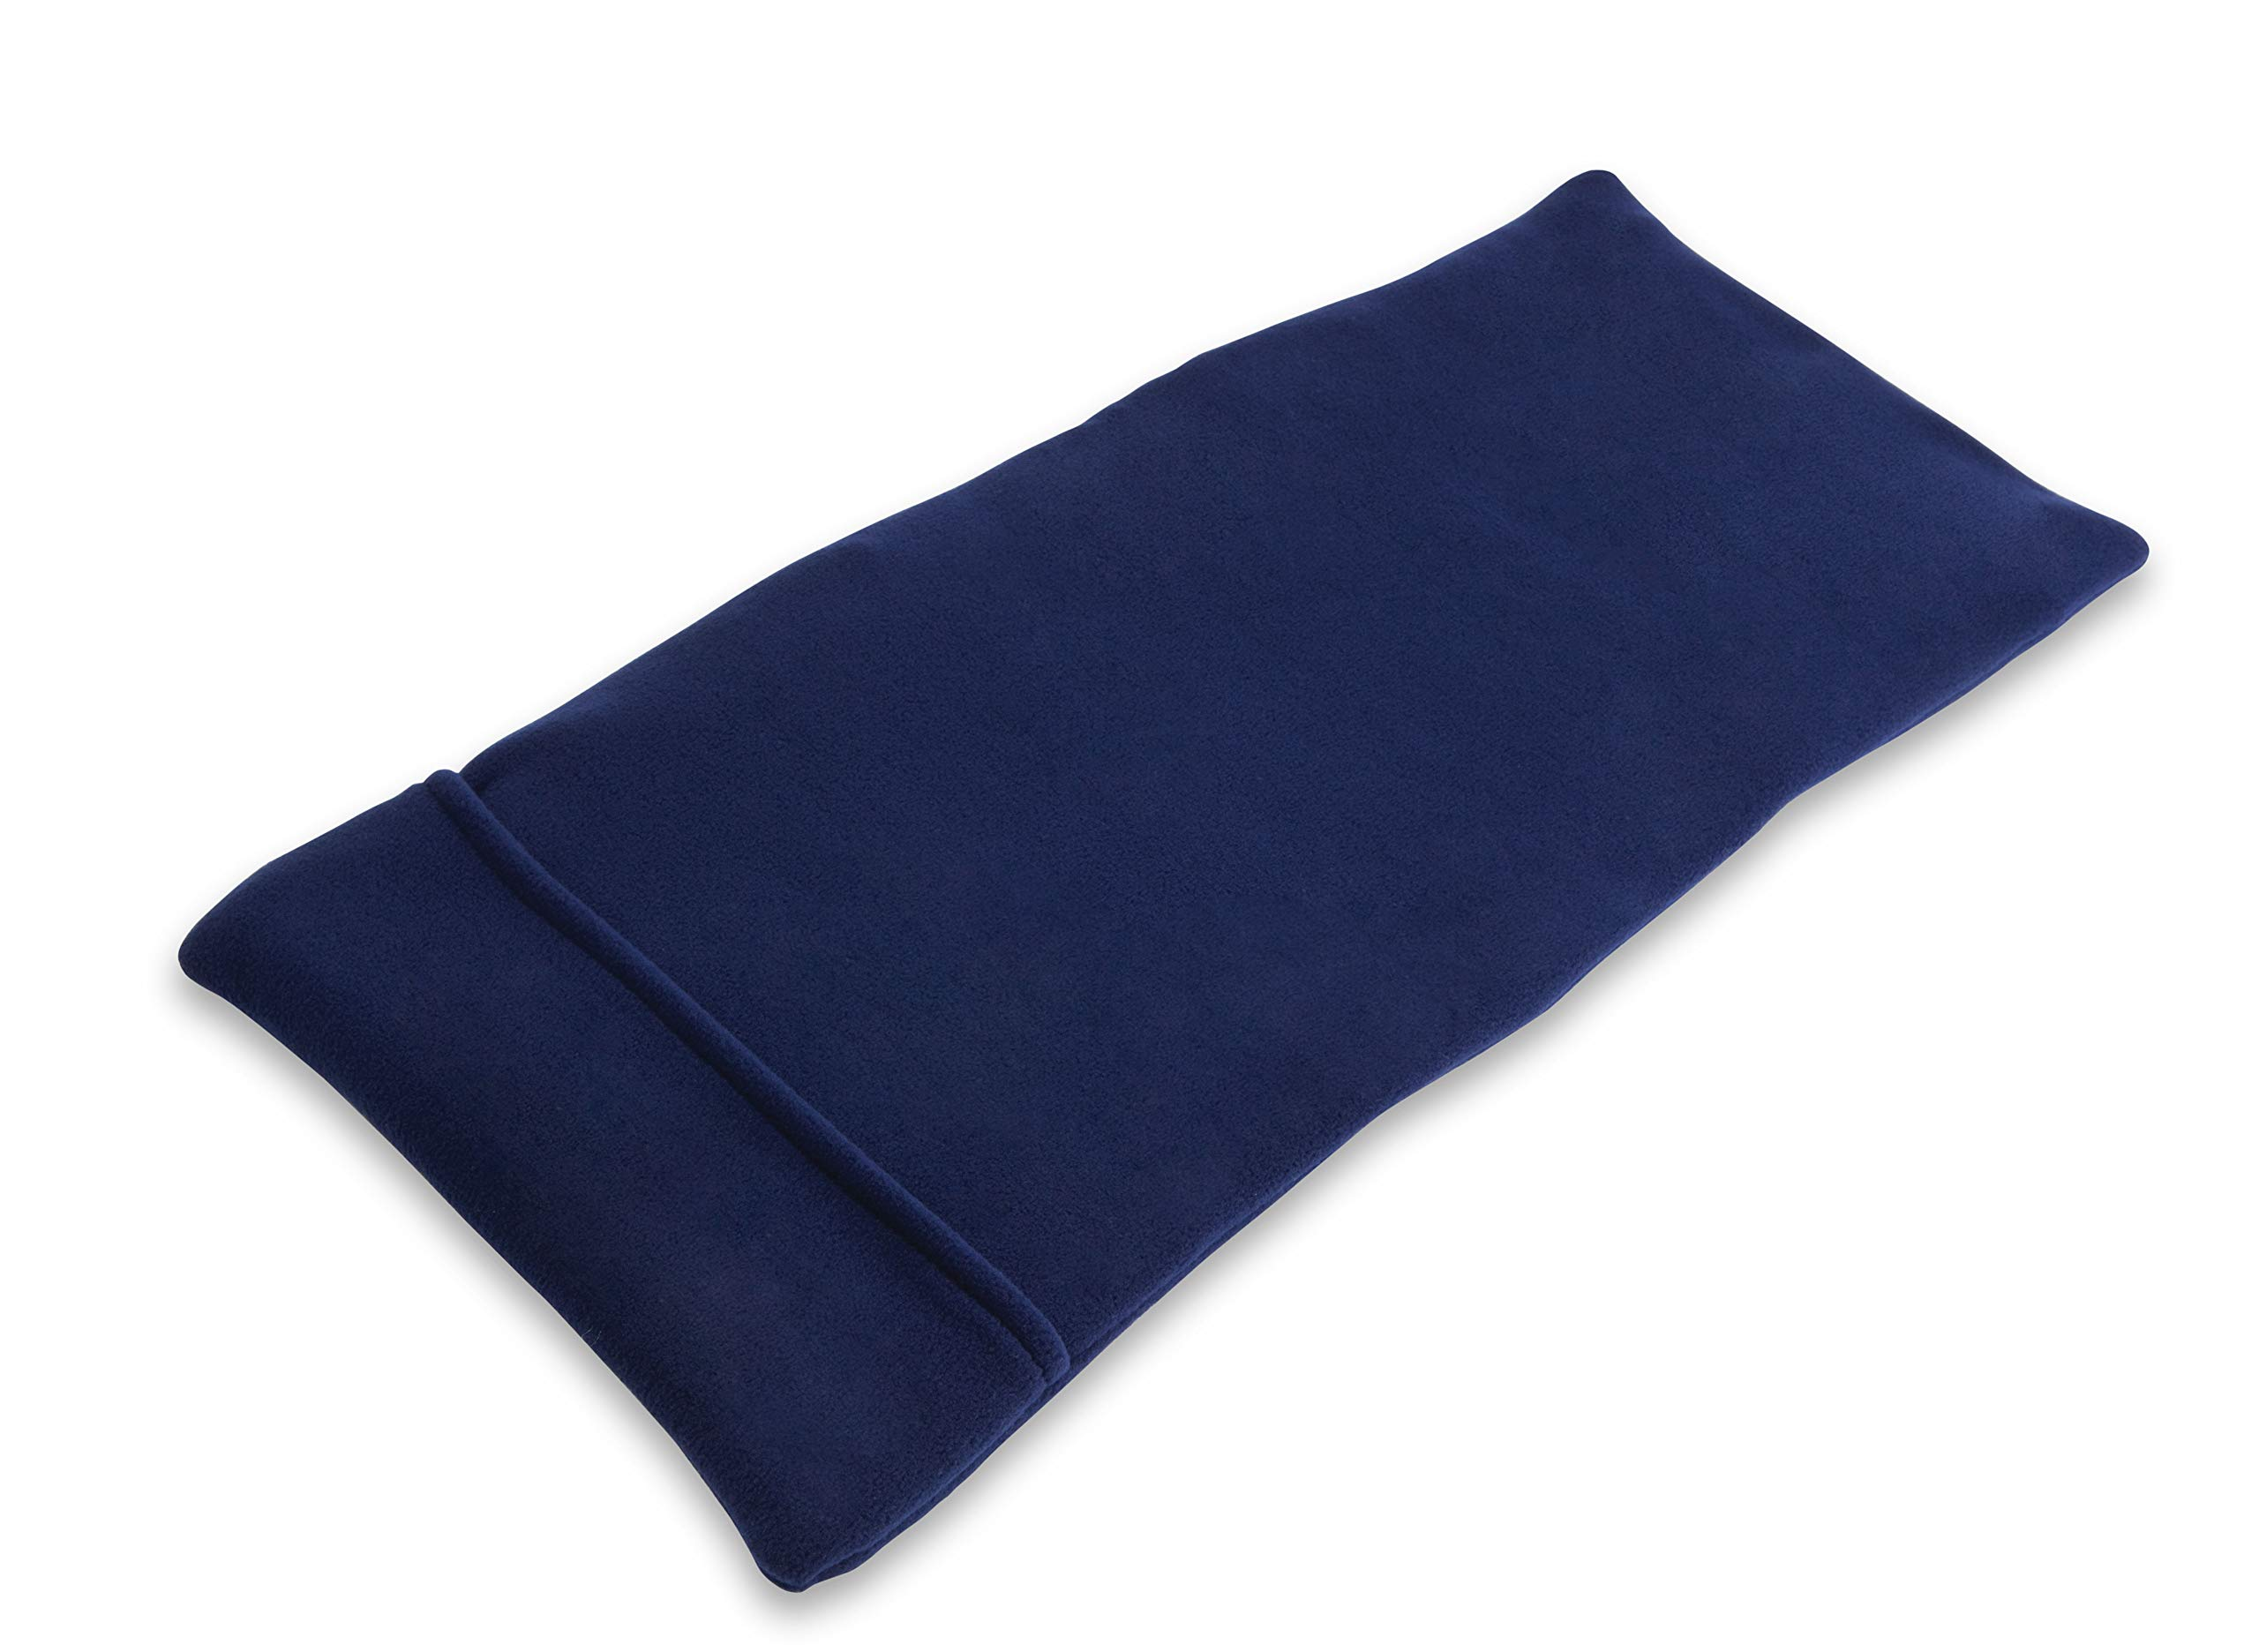 Sunny Bay XL Body Heating Wrap, Personal, Reusable, Hot & Cold Compress, Washable Cover, Heat Therapy Pad for Sore Neck, Back & Shoulder Muscle Pain Relief - Non-Electric, Midnight Blue by Sunny Bay